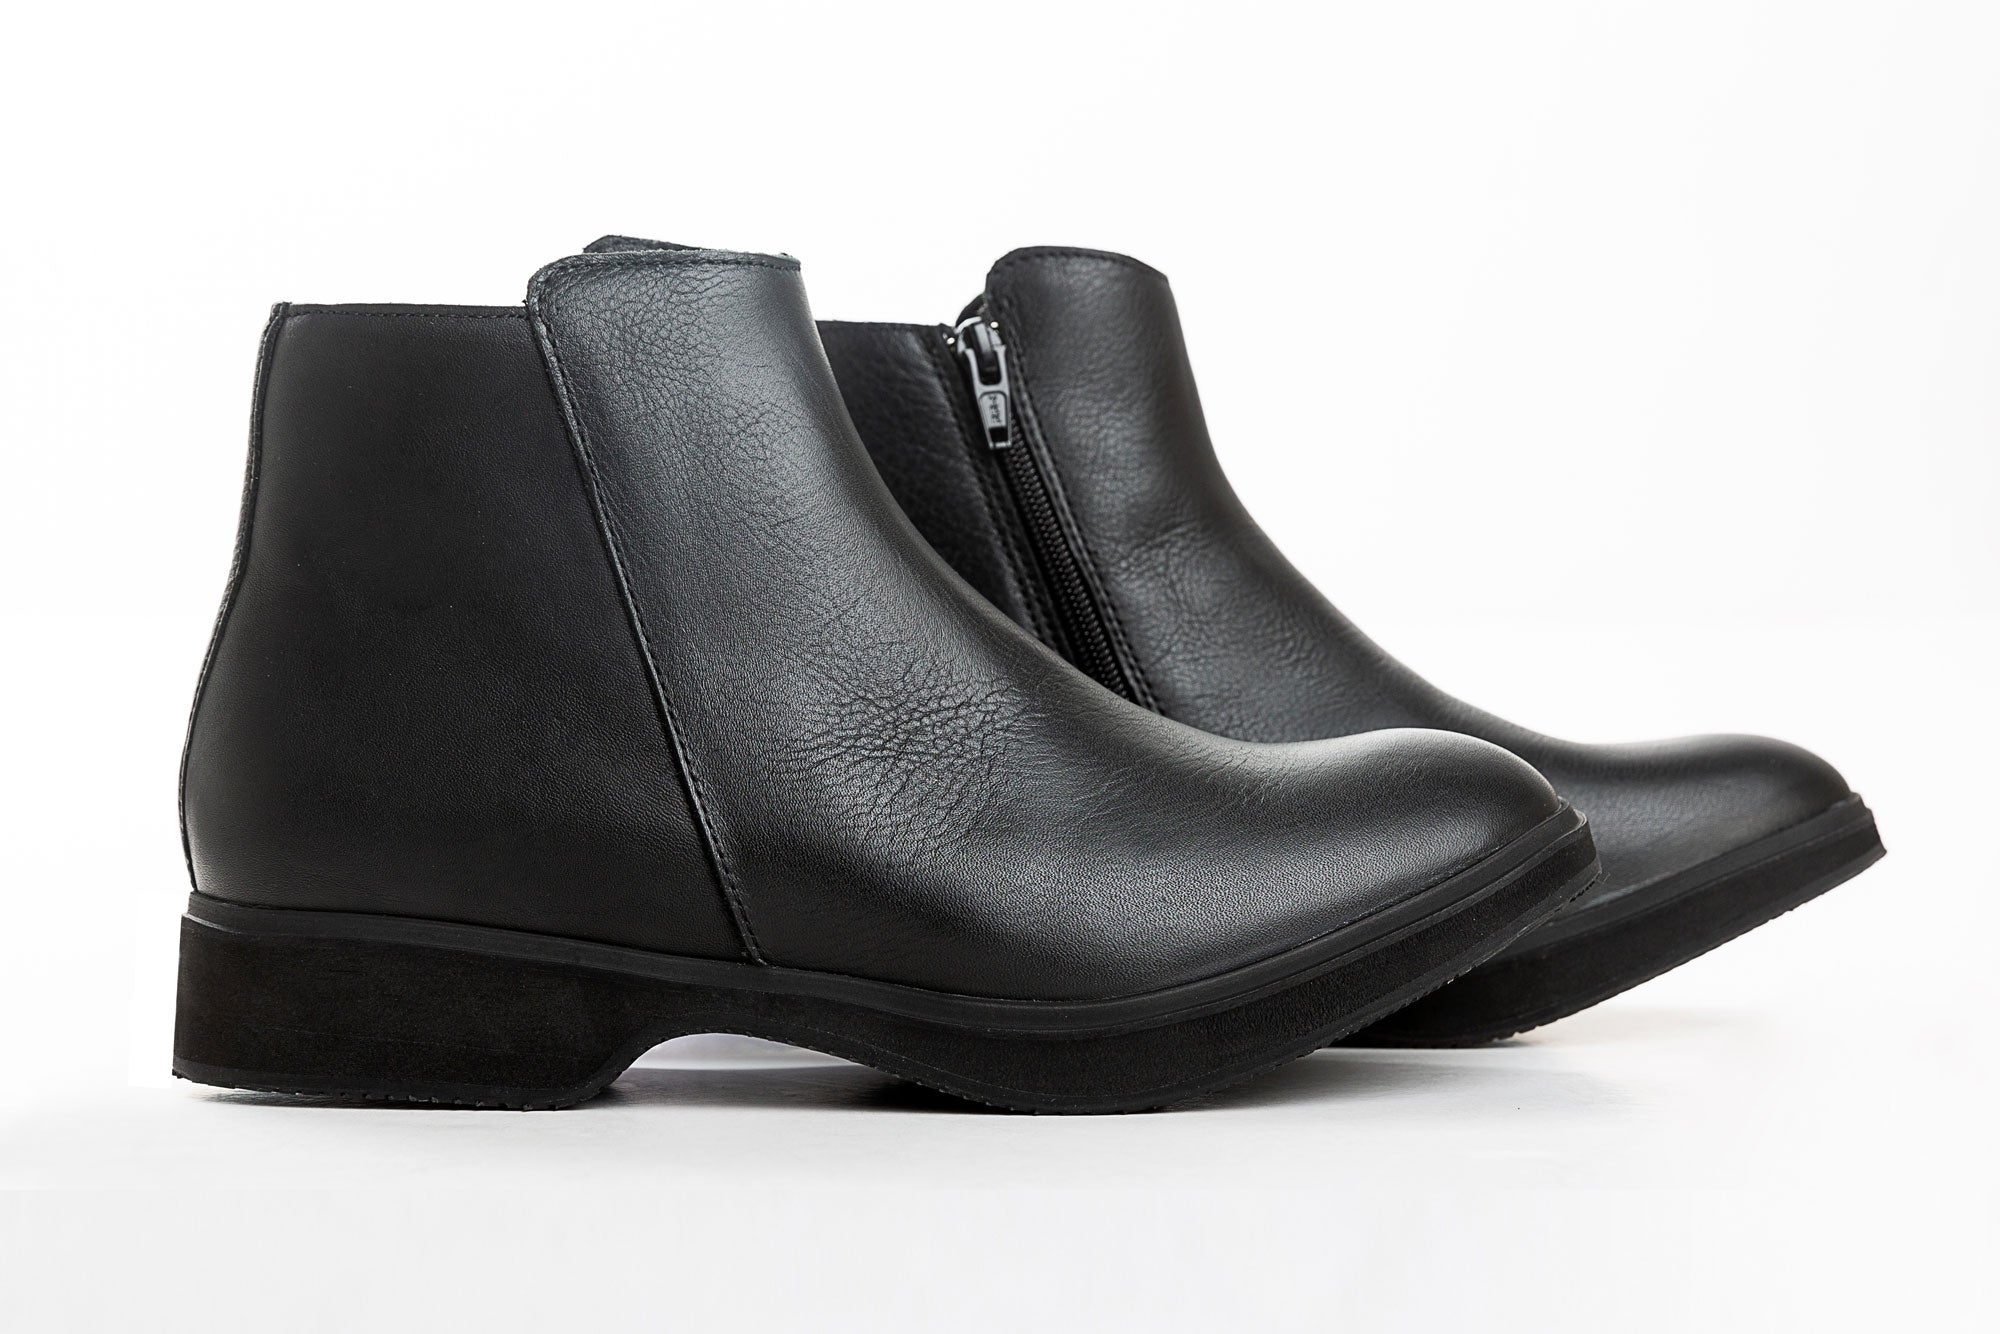 Most Comfortable Womens Booties For